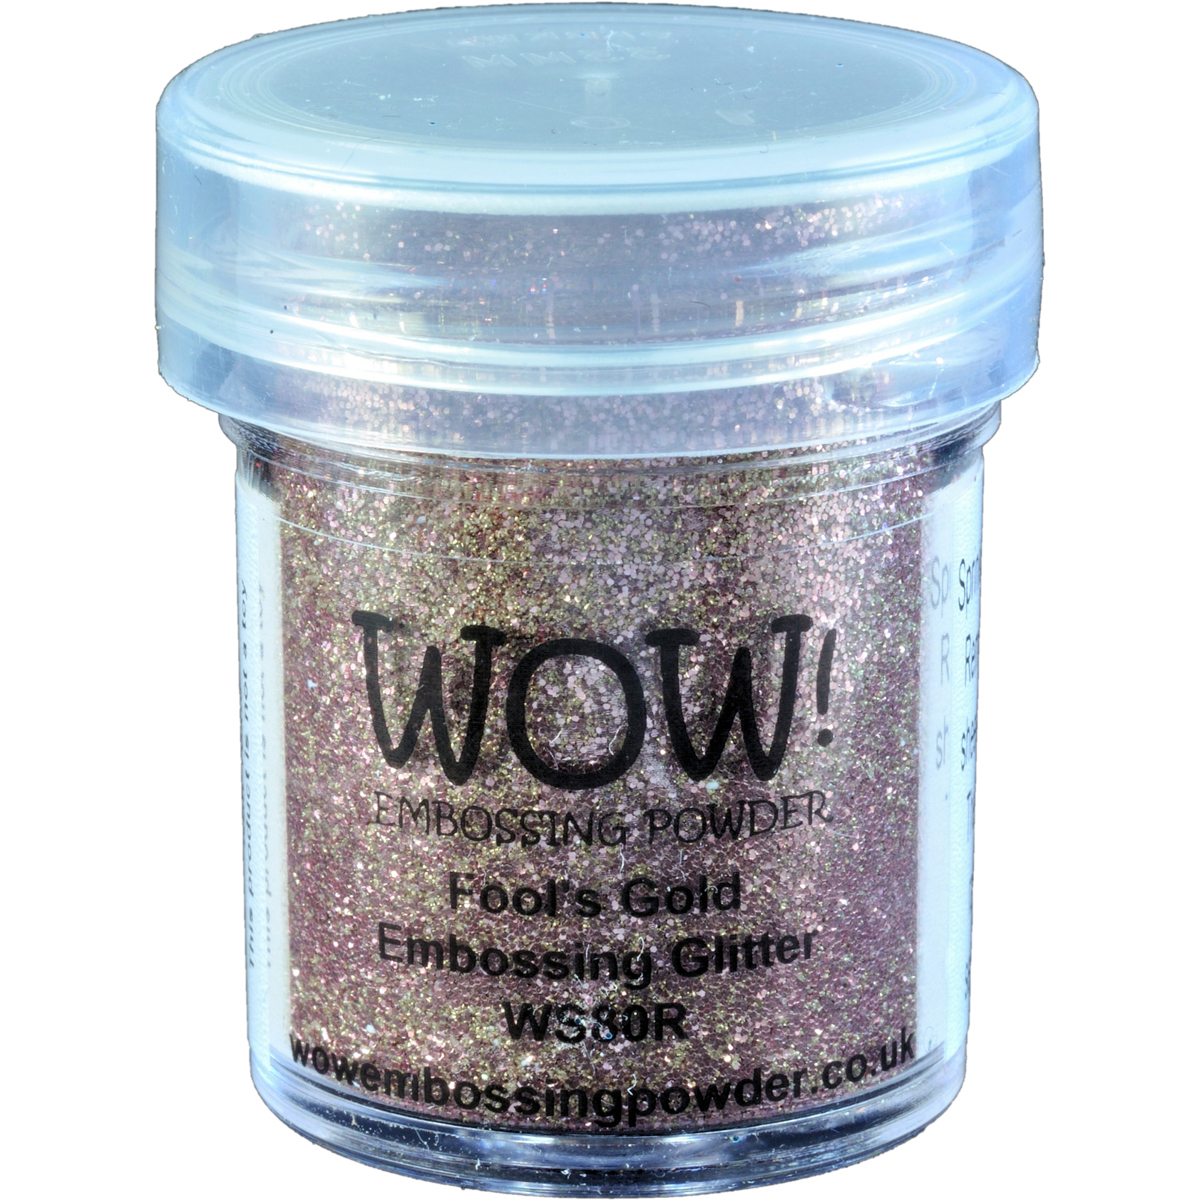 WOW! Embossing Powder 15ml-Fool's Gold